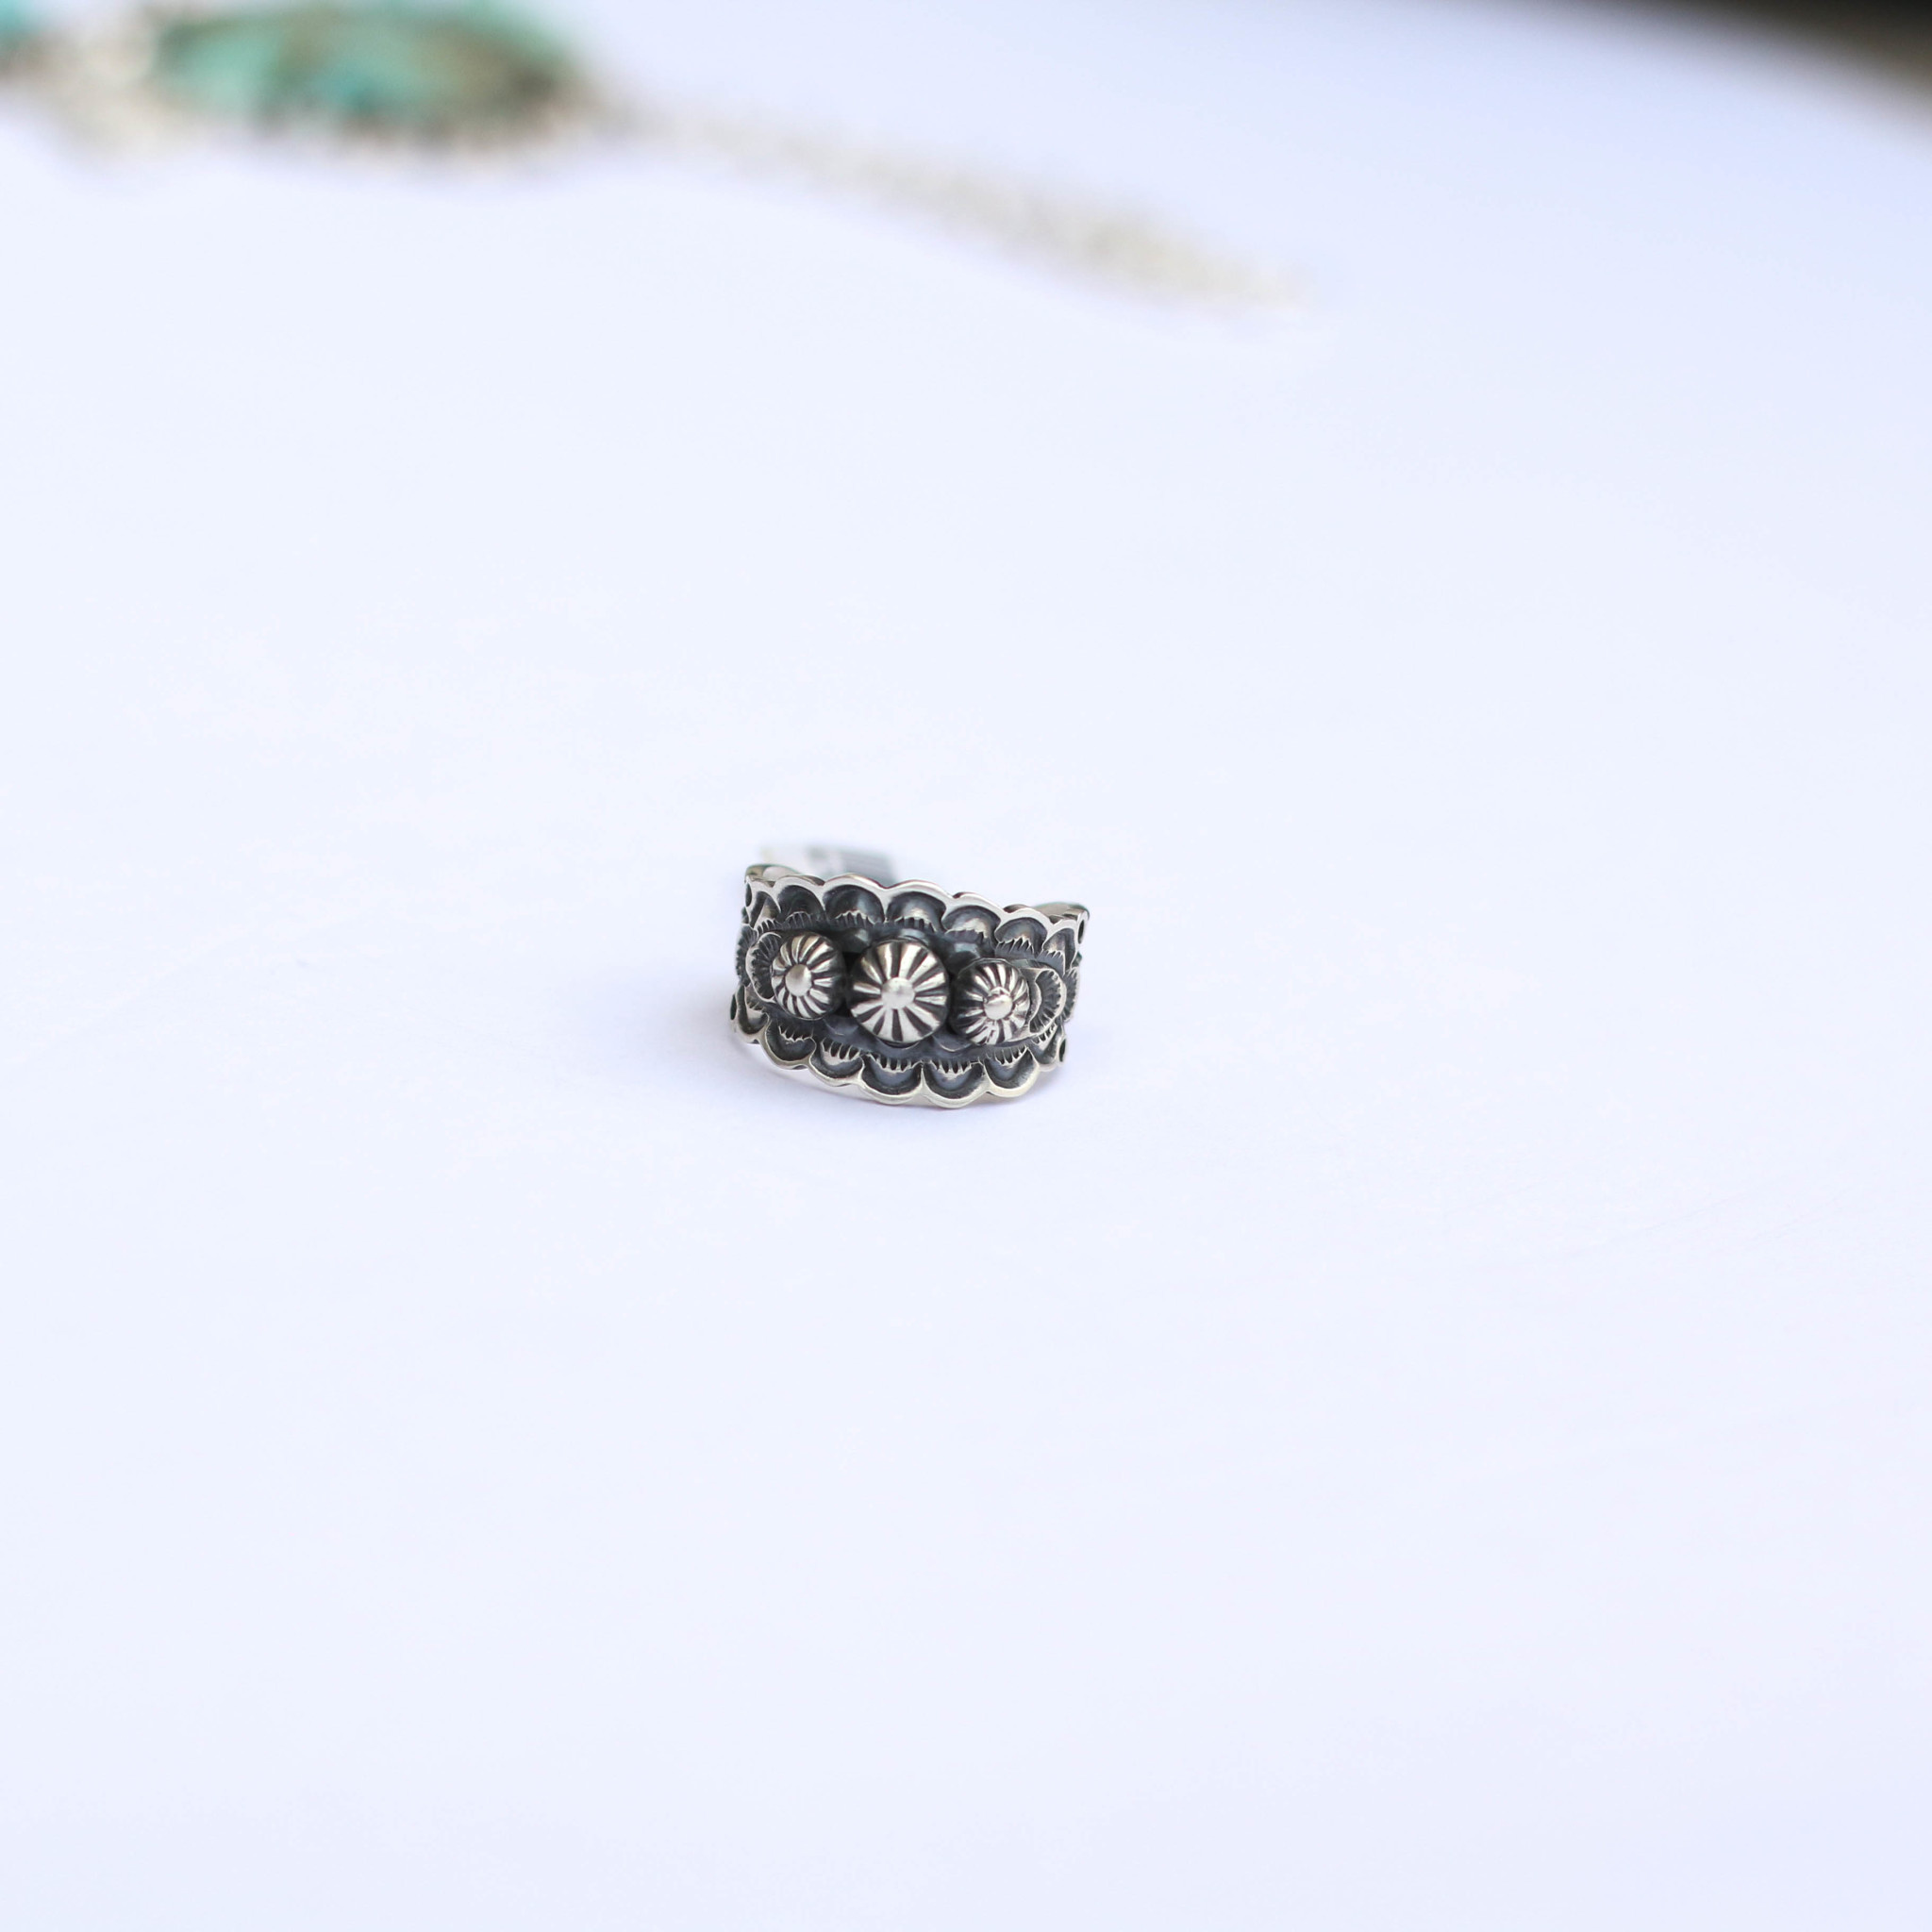 Punchy's Sterling Silver Studded Ring